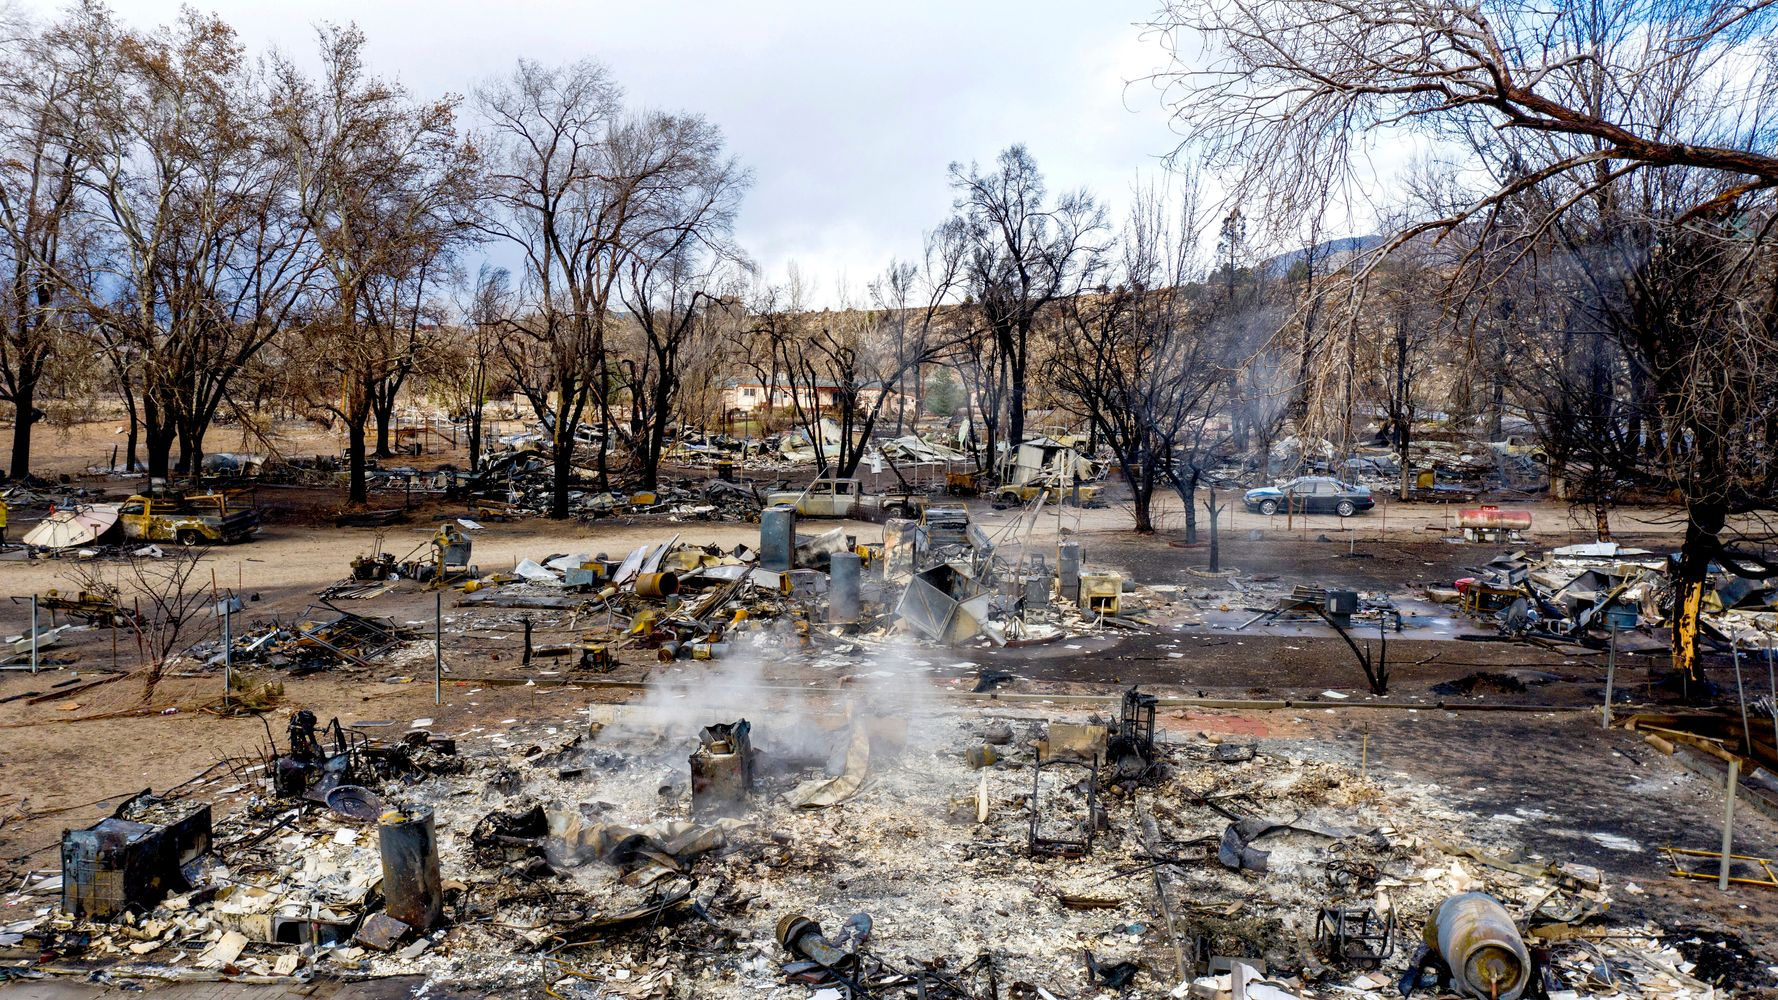 1 Killed, More Than 100 Displaced By Wildfire In Remote California Community